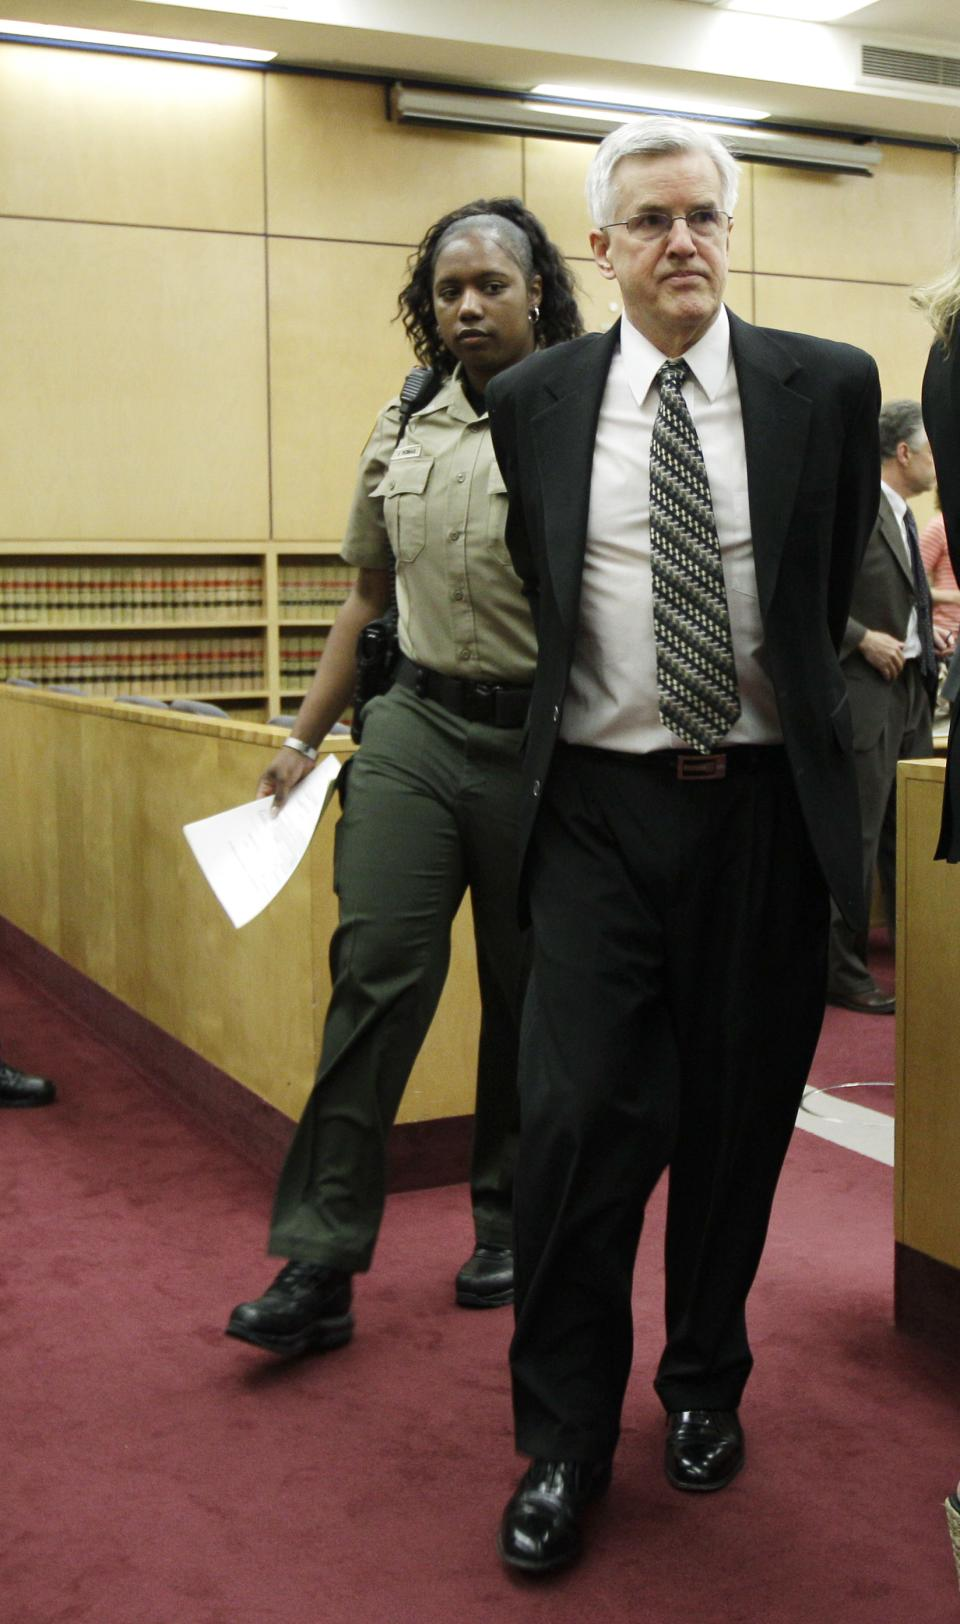 Steve Powell, right, is led from the courtroom after he was found guilty of 14 counts of voyeurism, Wednesday, May 16, 2012, in Tacoma, Wash. Powell is the father-in-law of missing Utah mother Susan Powell. (AP Photo/Ted S. Warren)